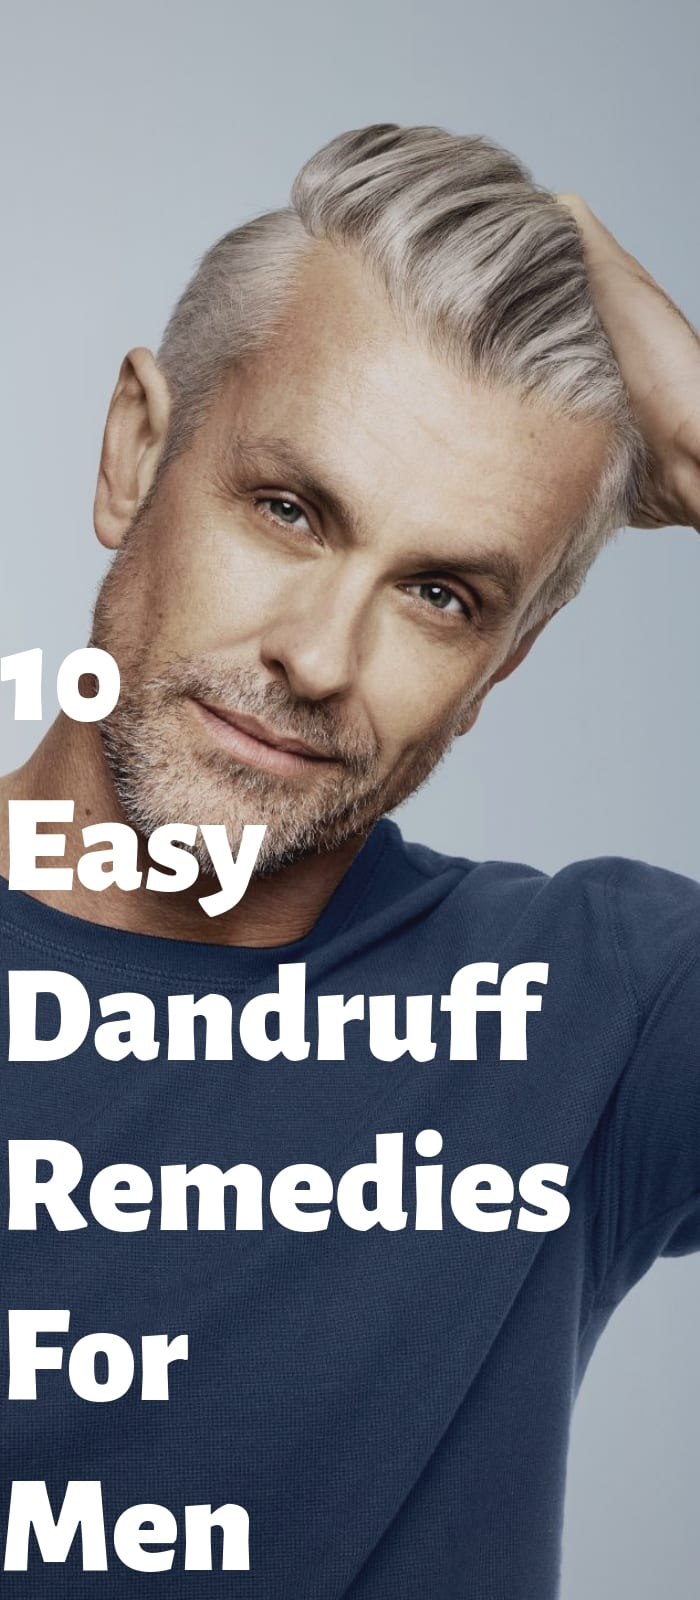 10 Easy Dandruff Remedies For Men (1)